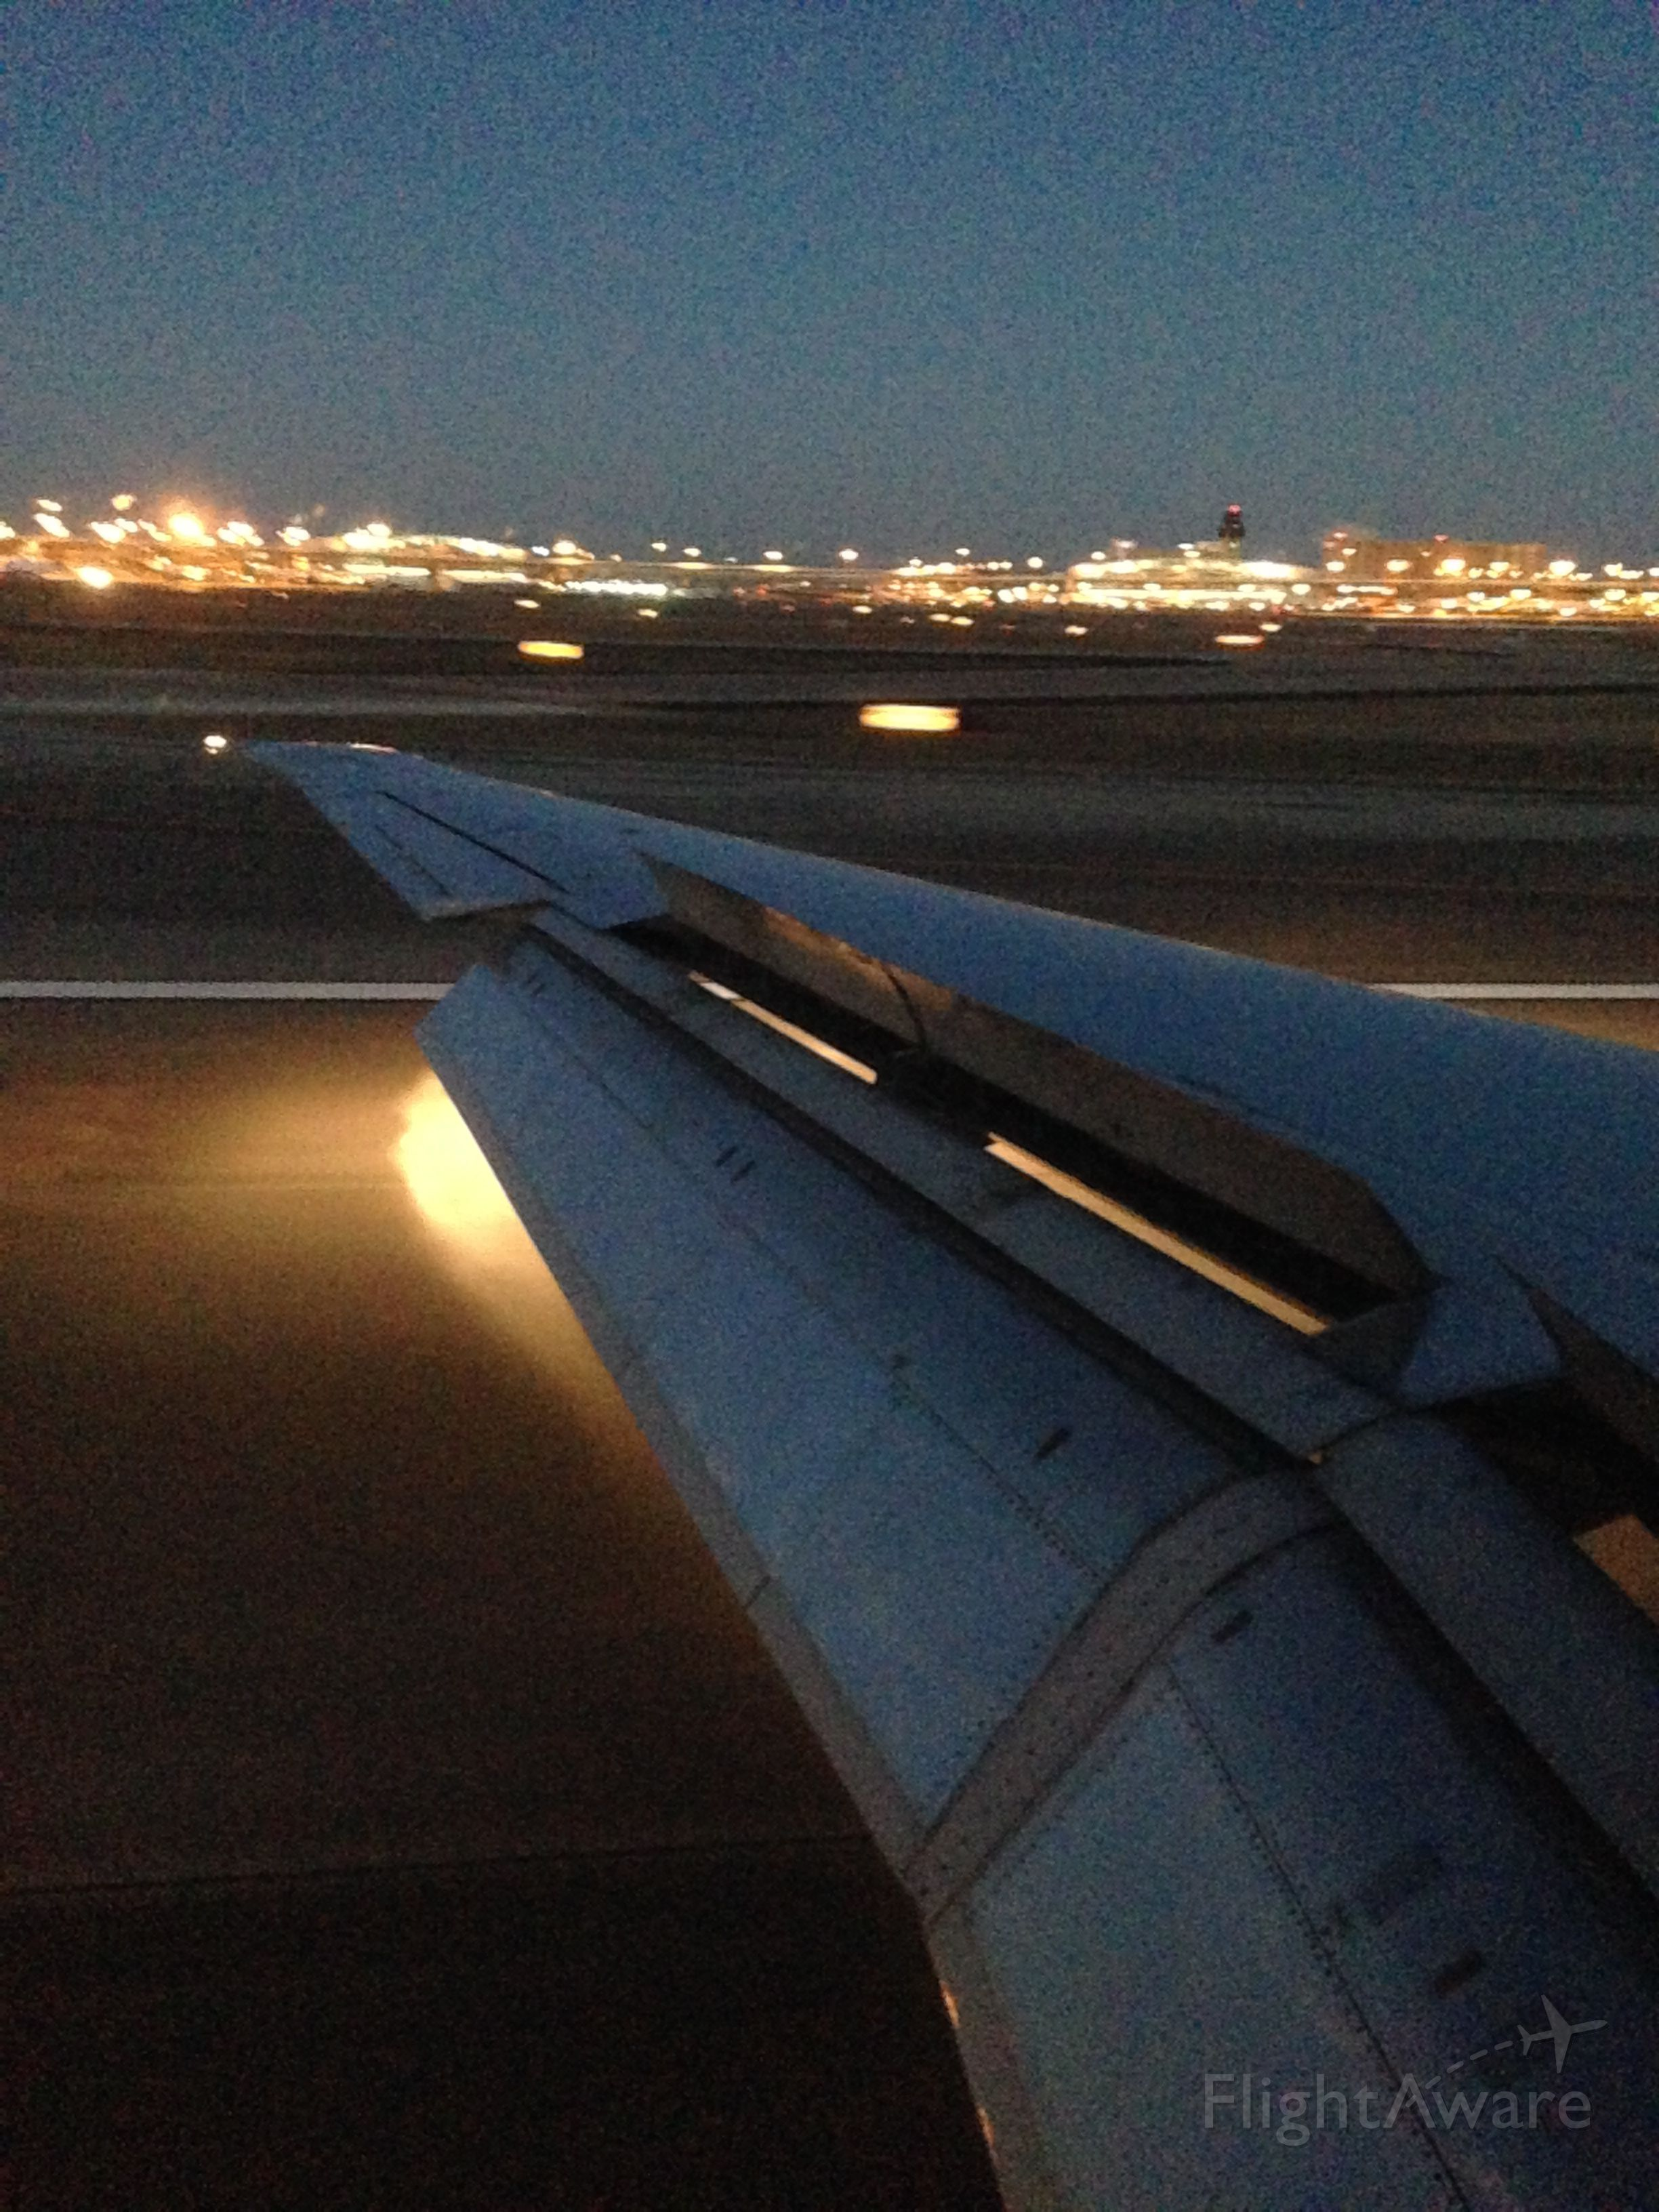 — — - Touchdown DFW on the way to Cabo Flt AA 1234